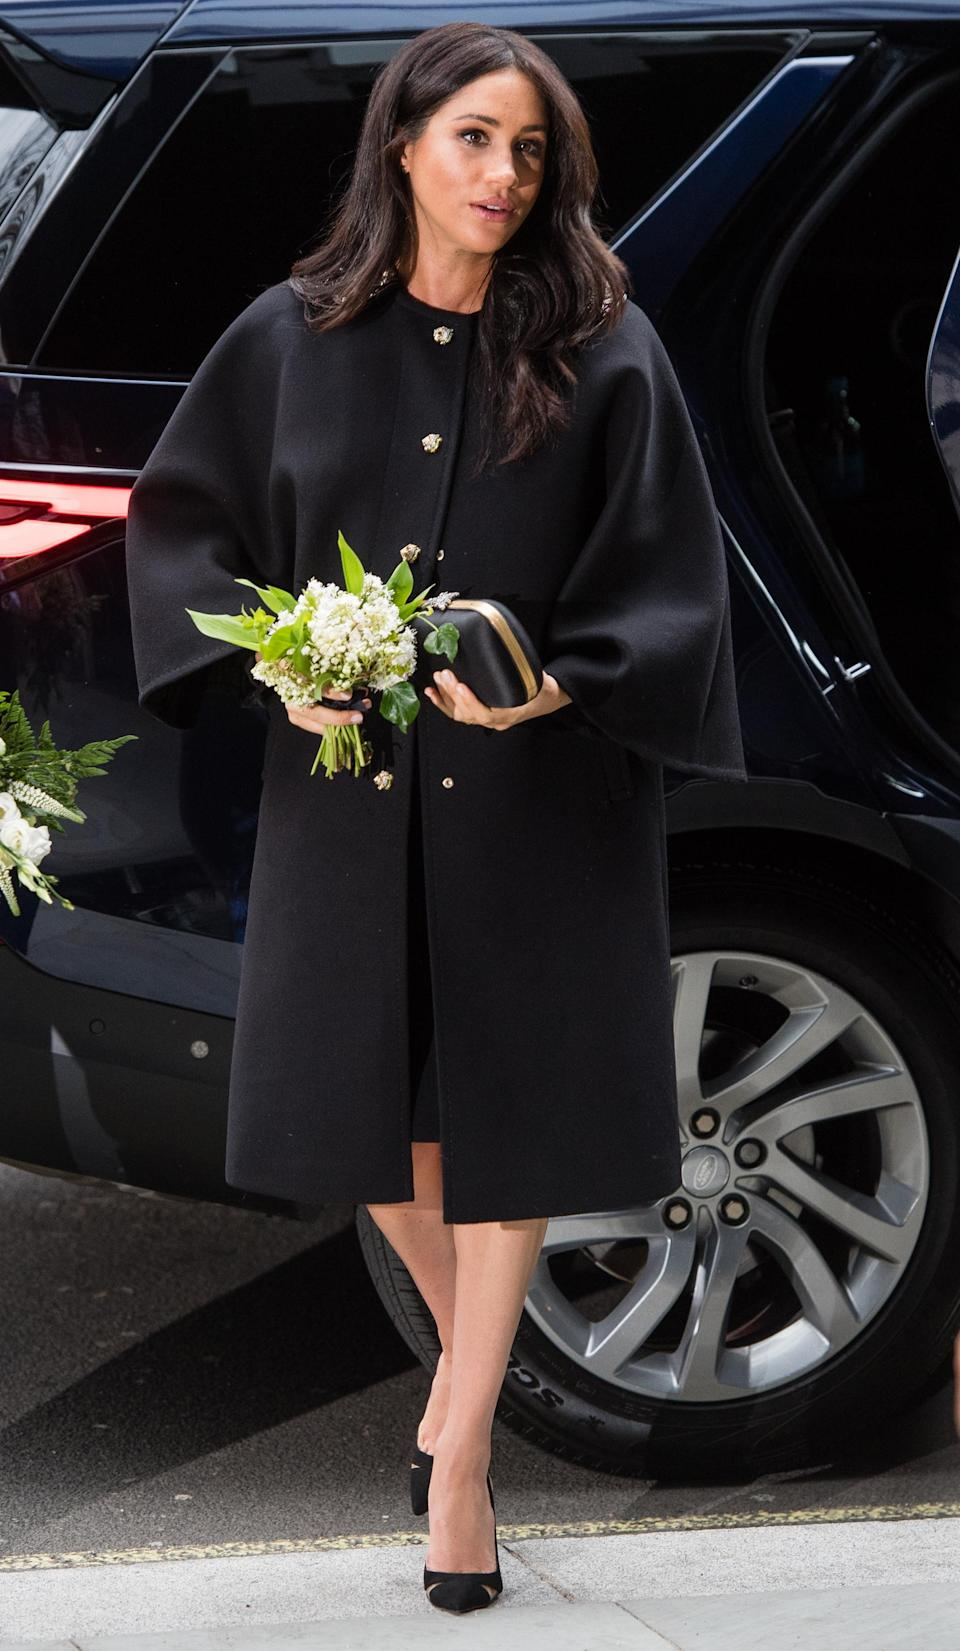 The Duchess of Sussex arrives at New Zealand House in London [Photo: Getty]